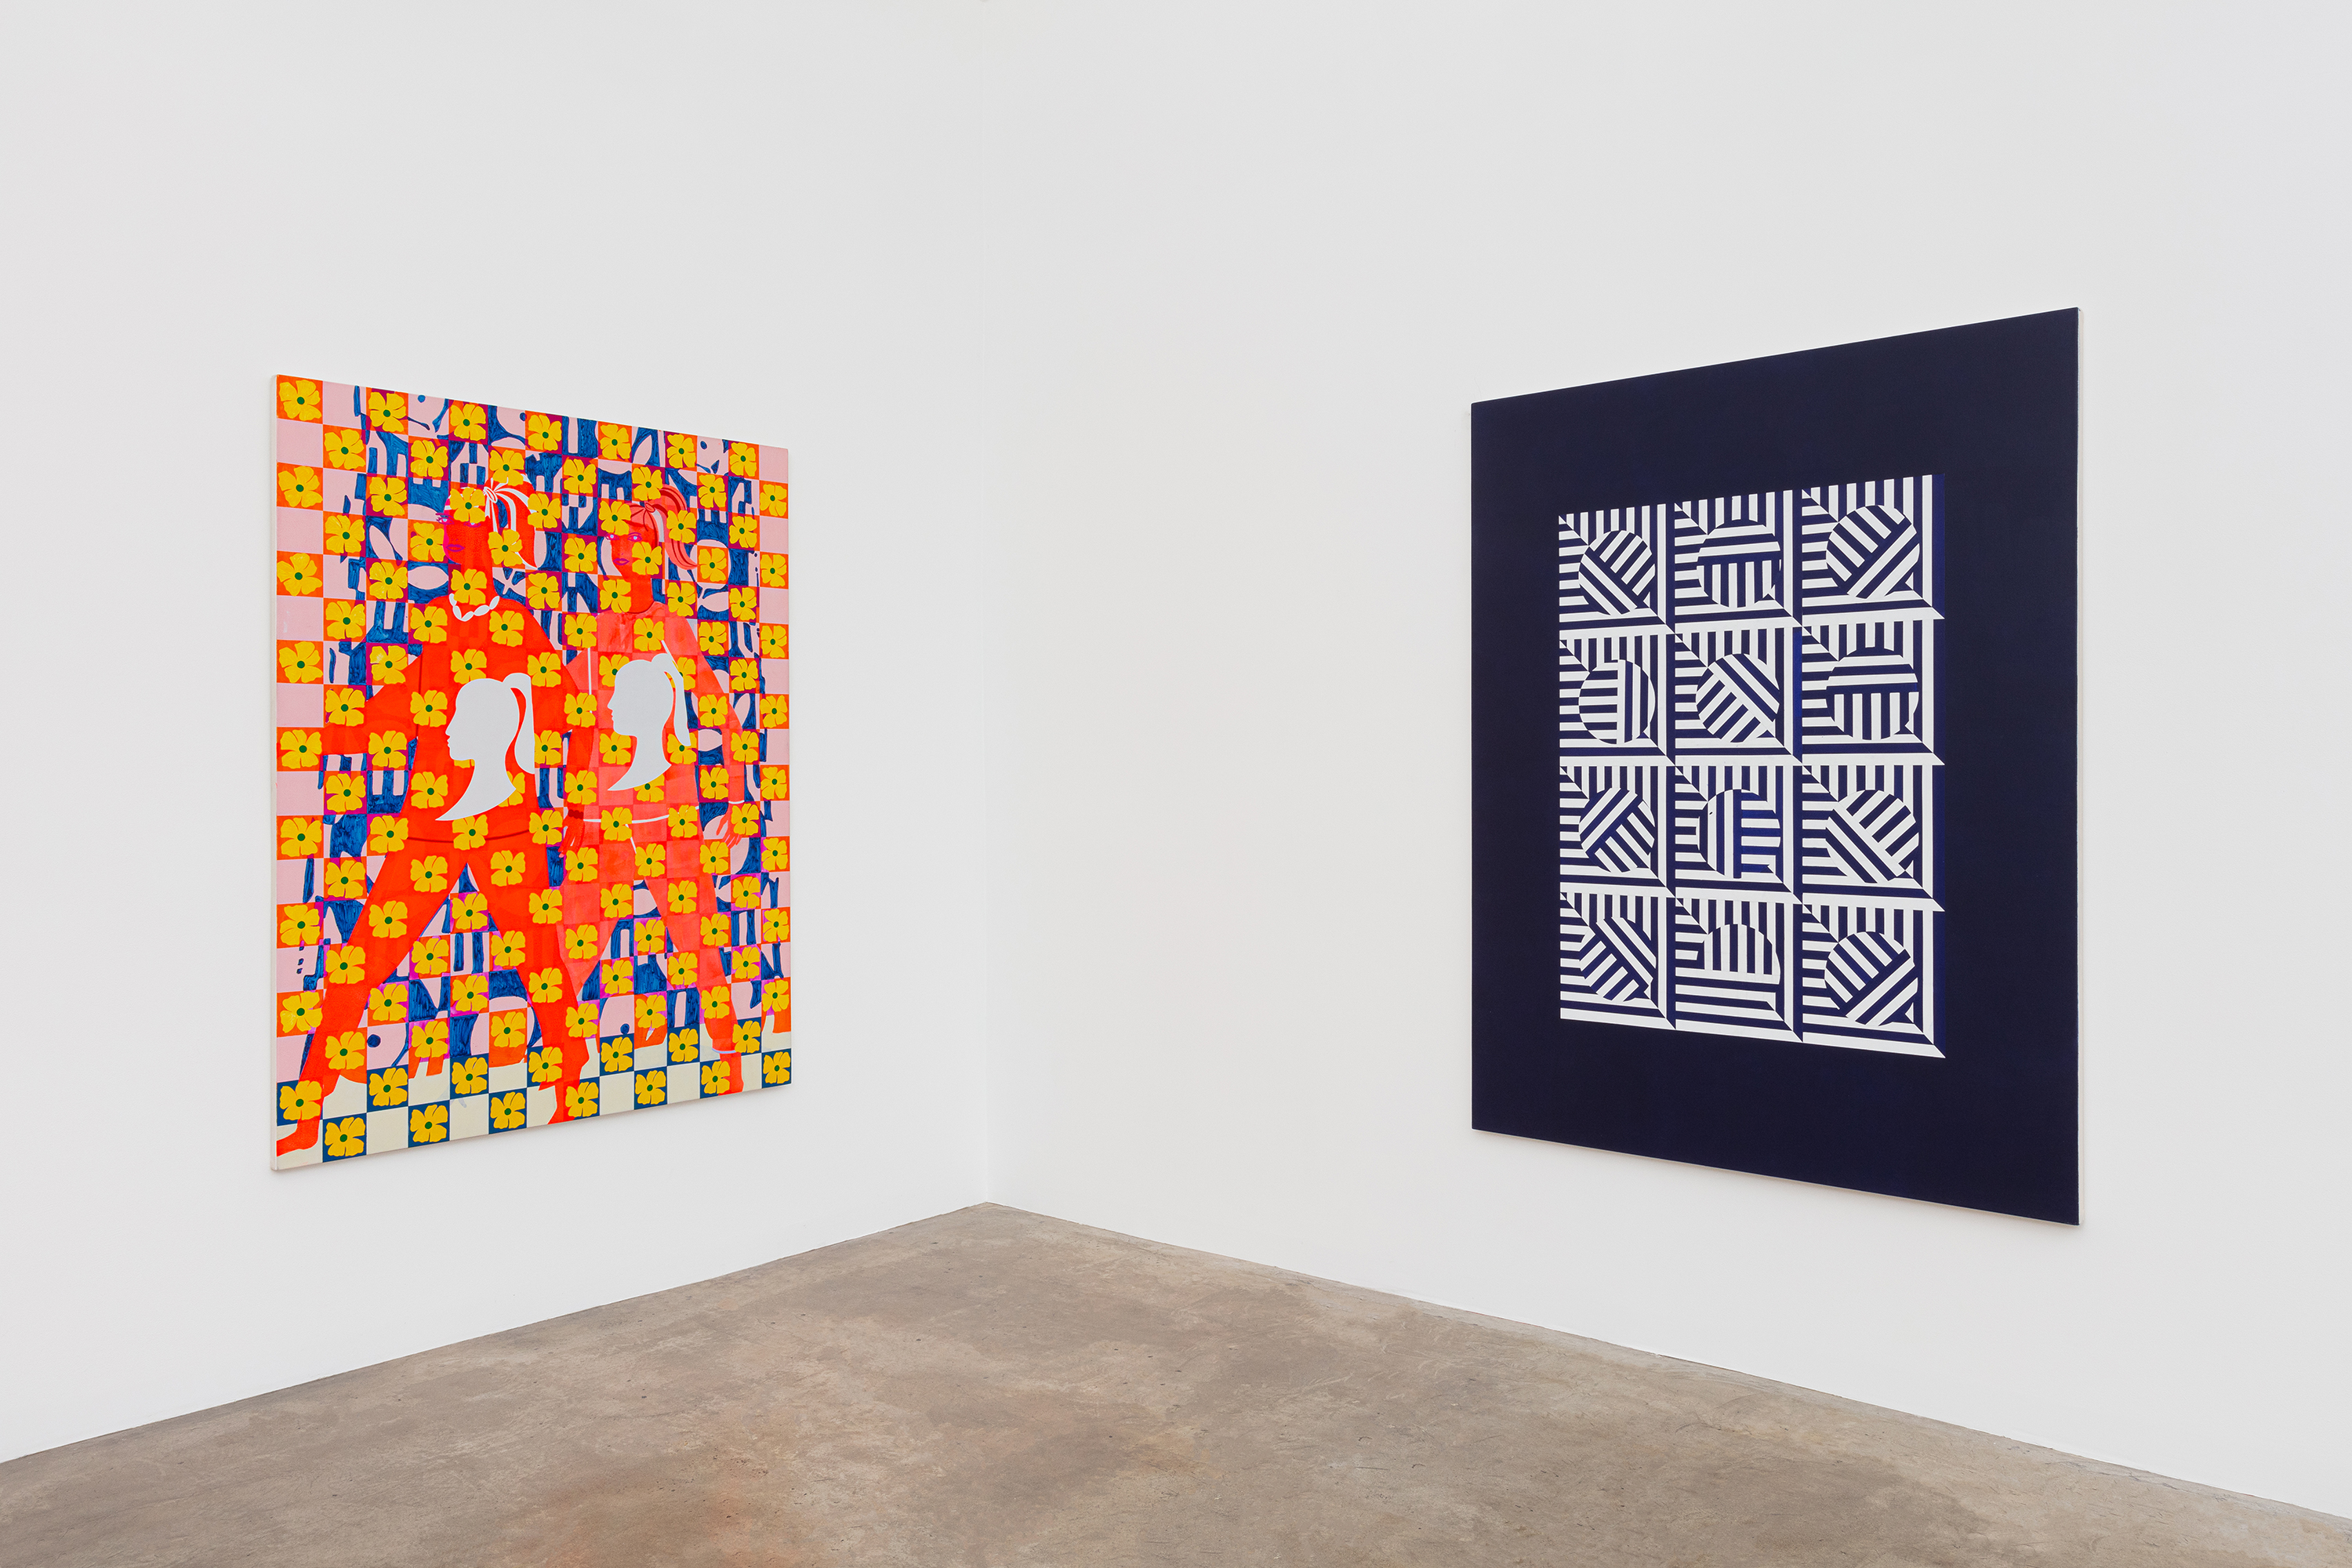 Installation View, Time And Intent, Courtesy of the Artist & Meliksetian | Briggs, Los Angeles. Photo: Evan Bedford.